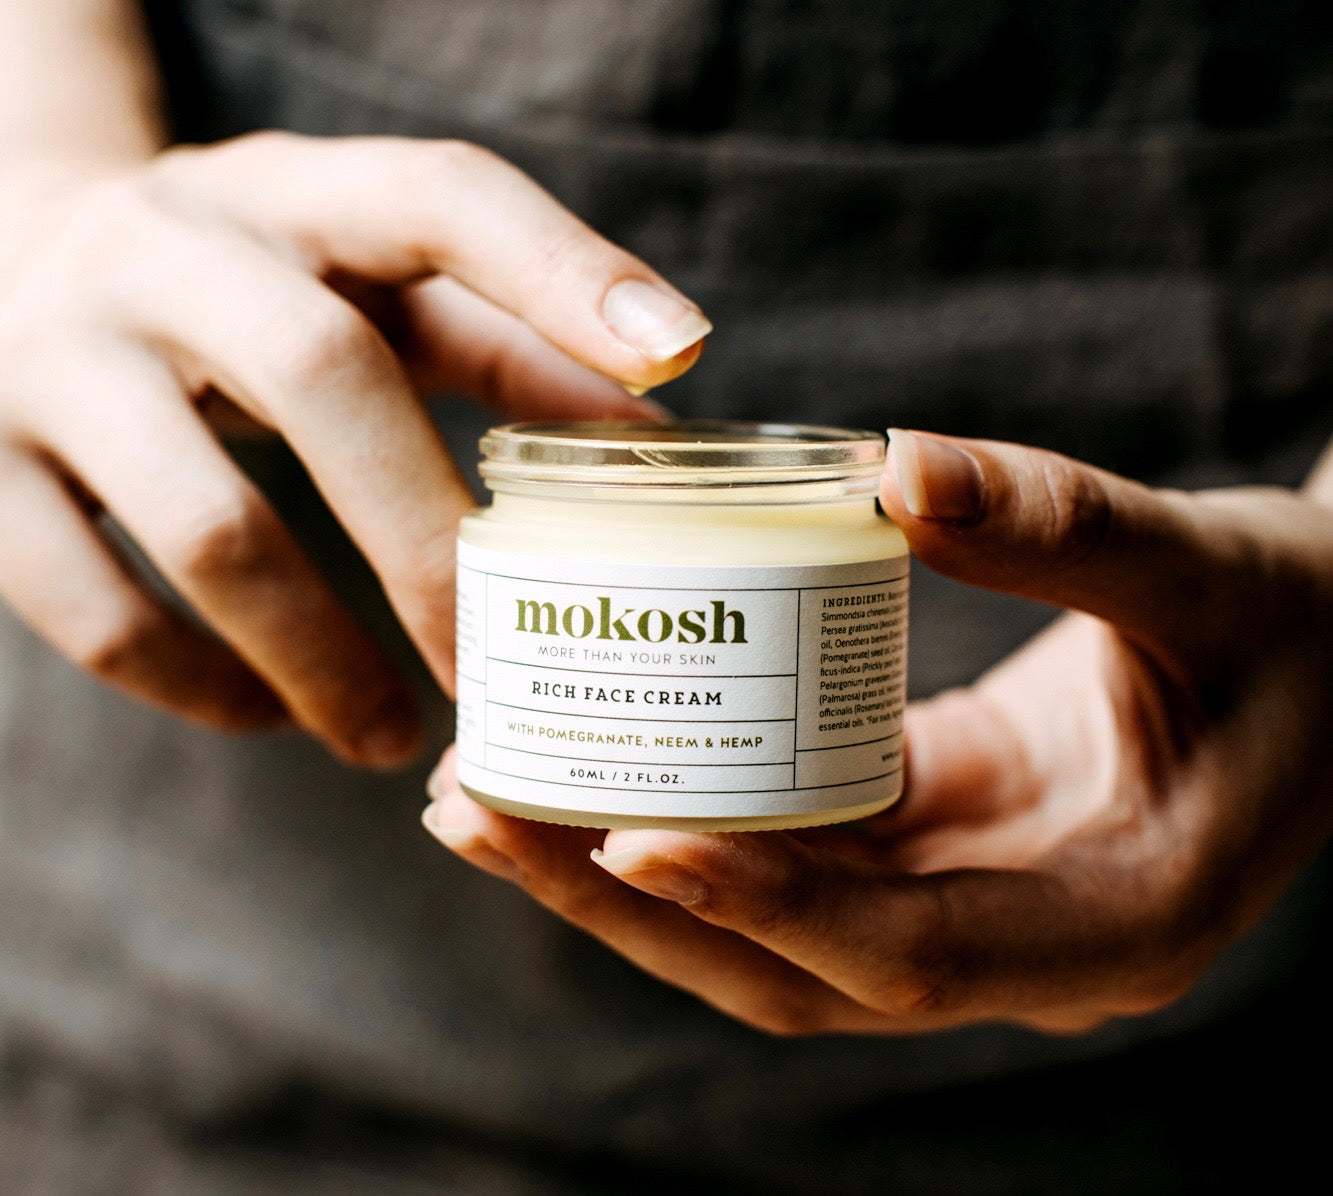 8 Skin Care Myths You Should Know About - MOKOSH